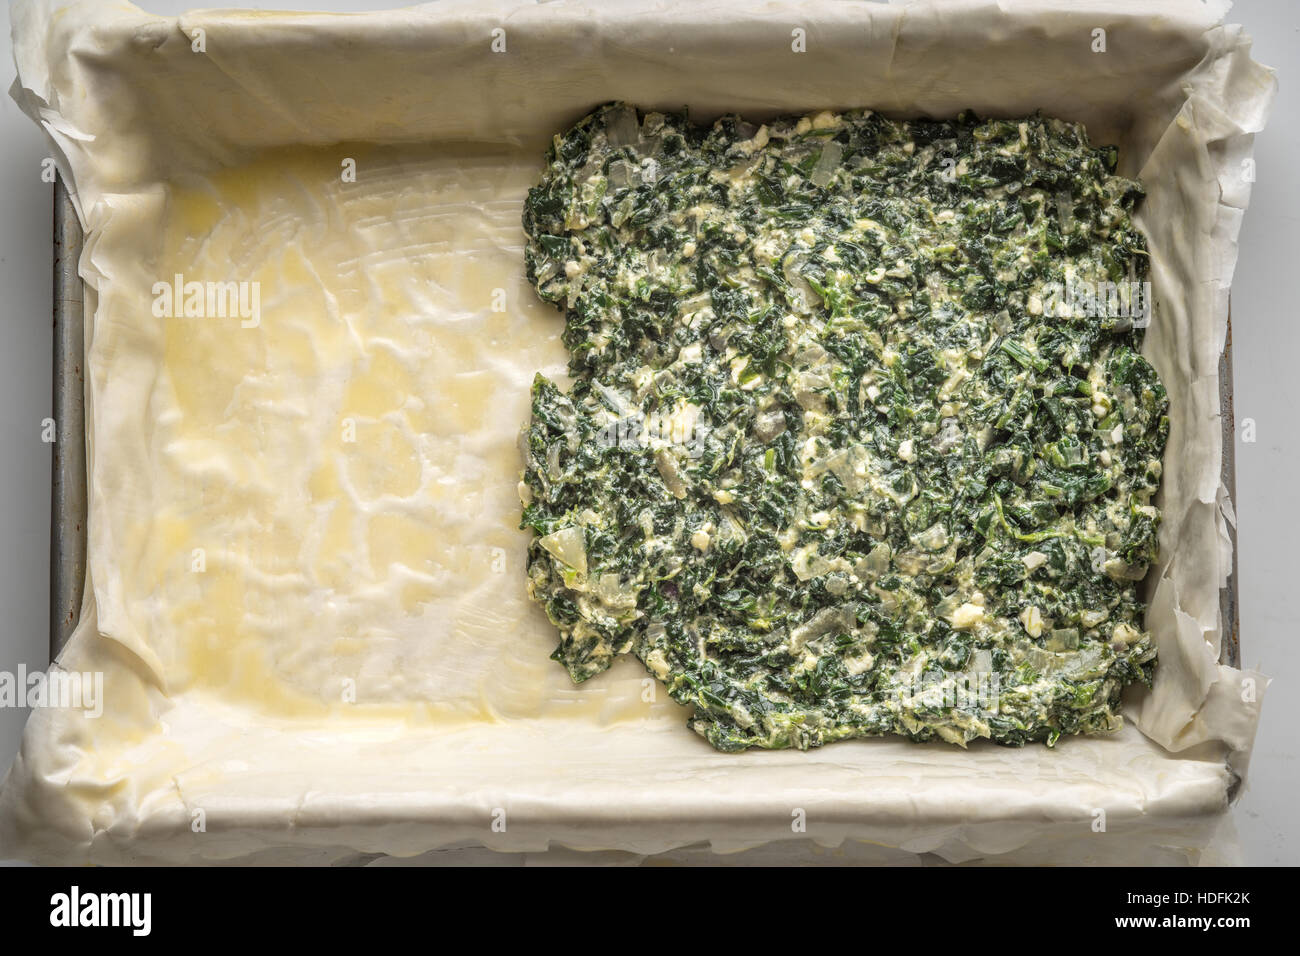 Placing the filling for spanakopita on the dough - Stock Image